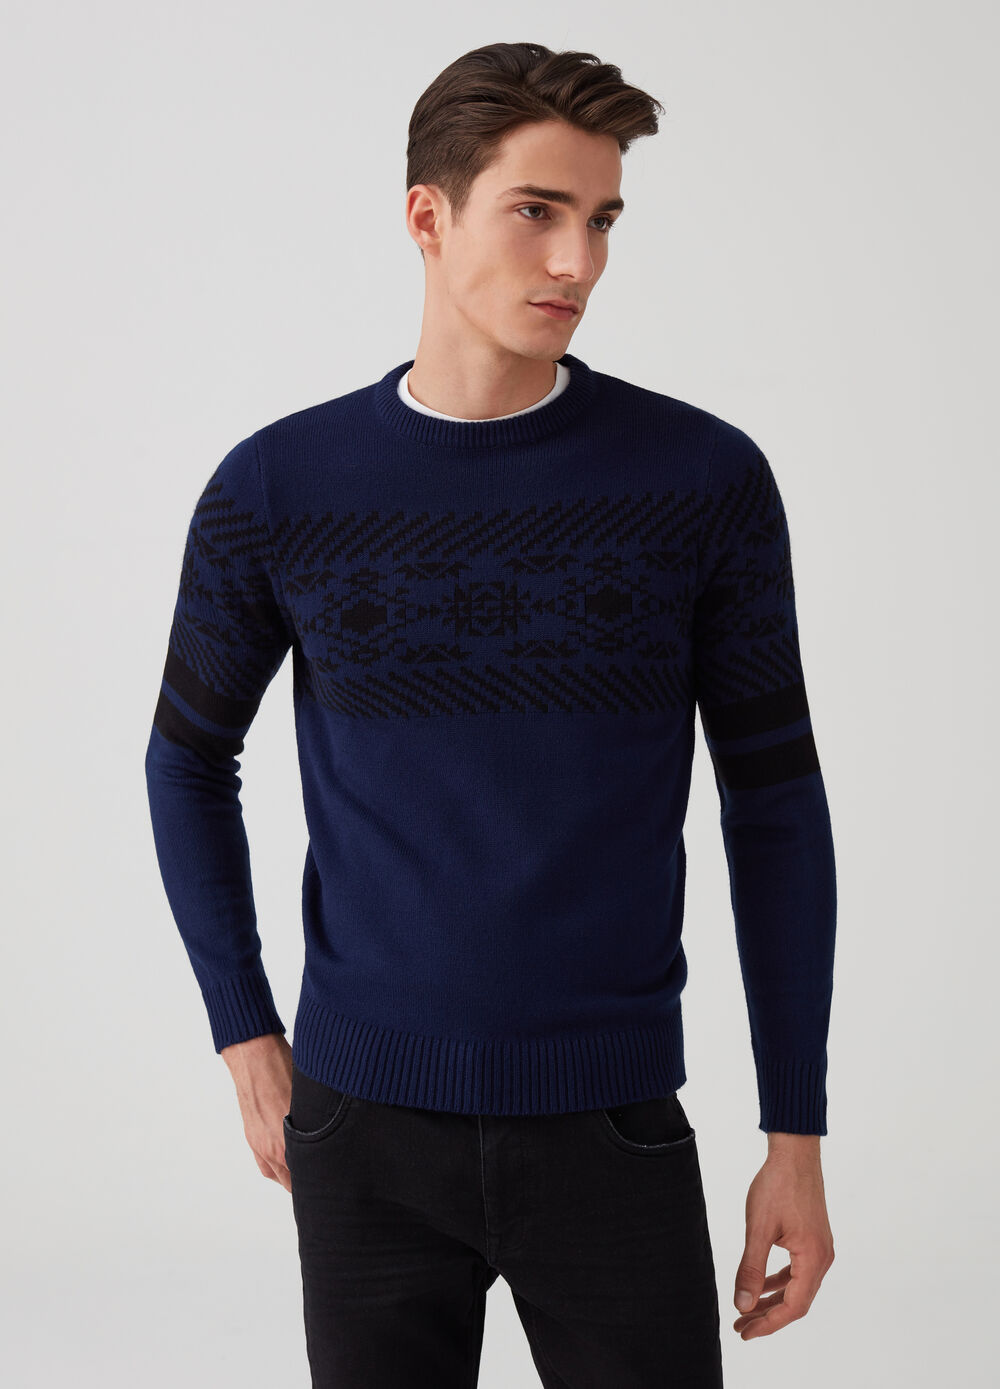 Knit pullover with jacquard embroidery